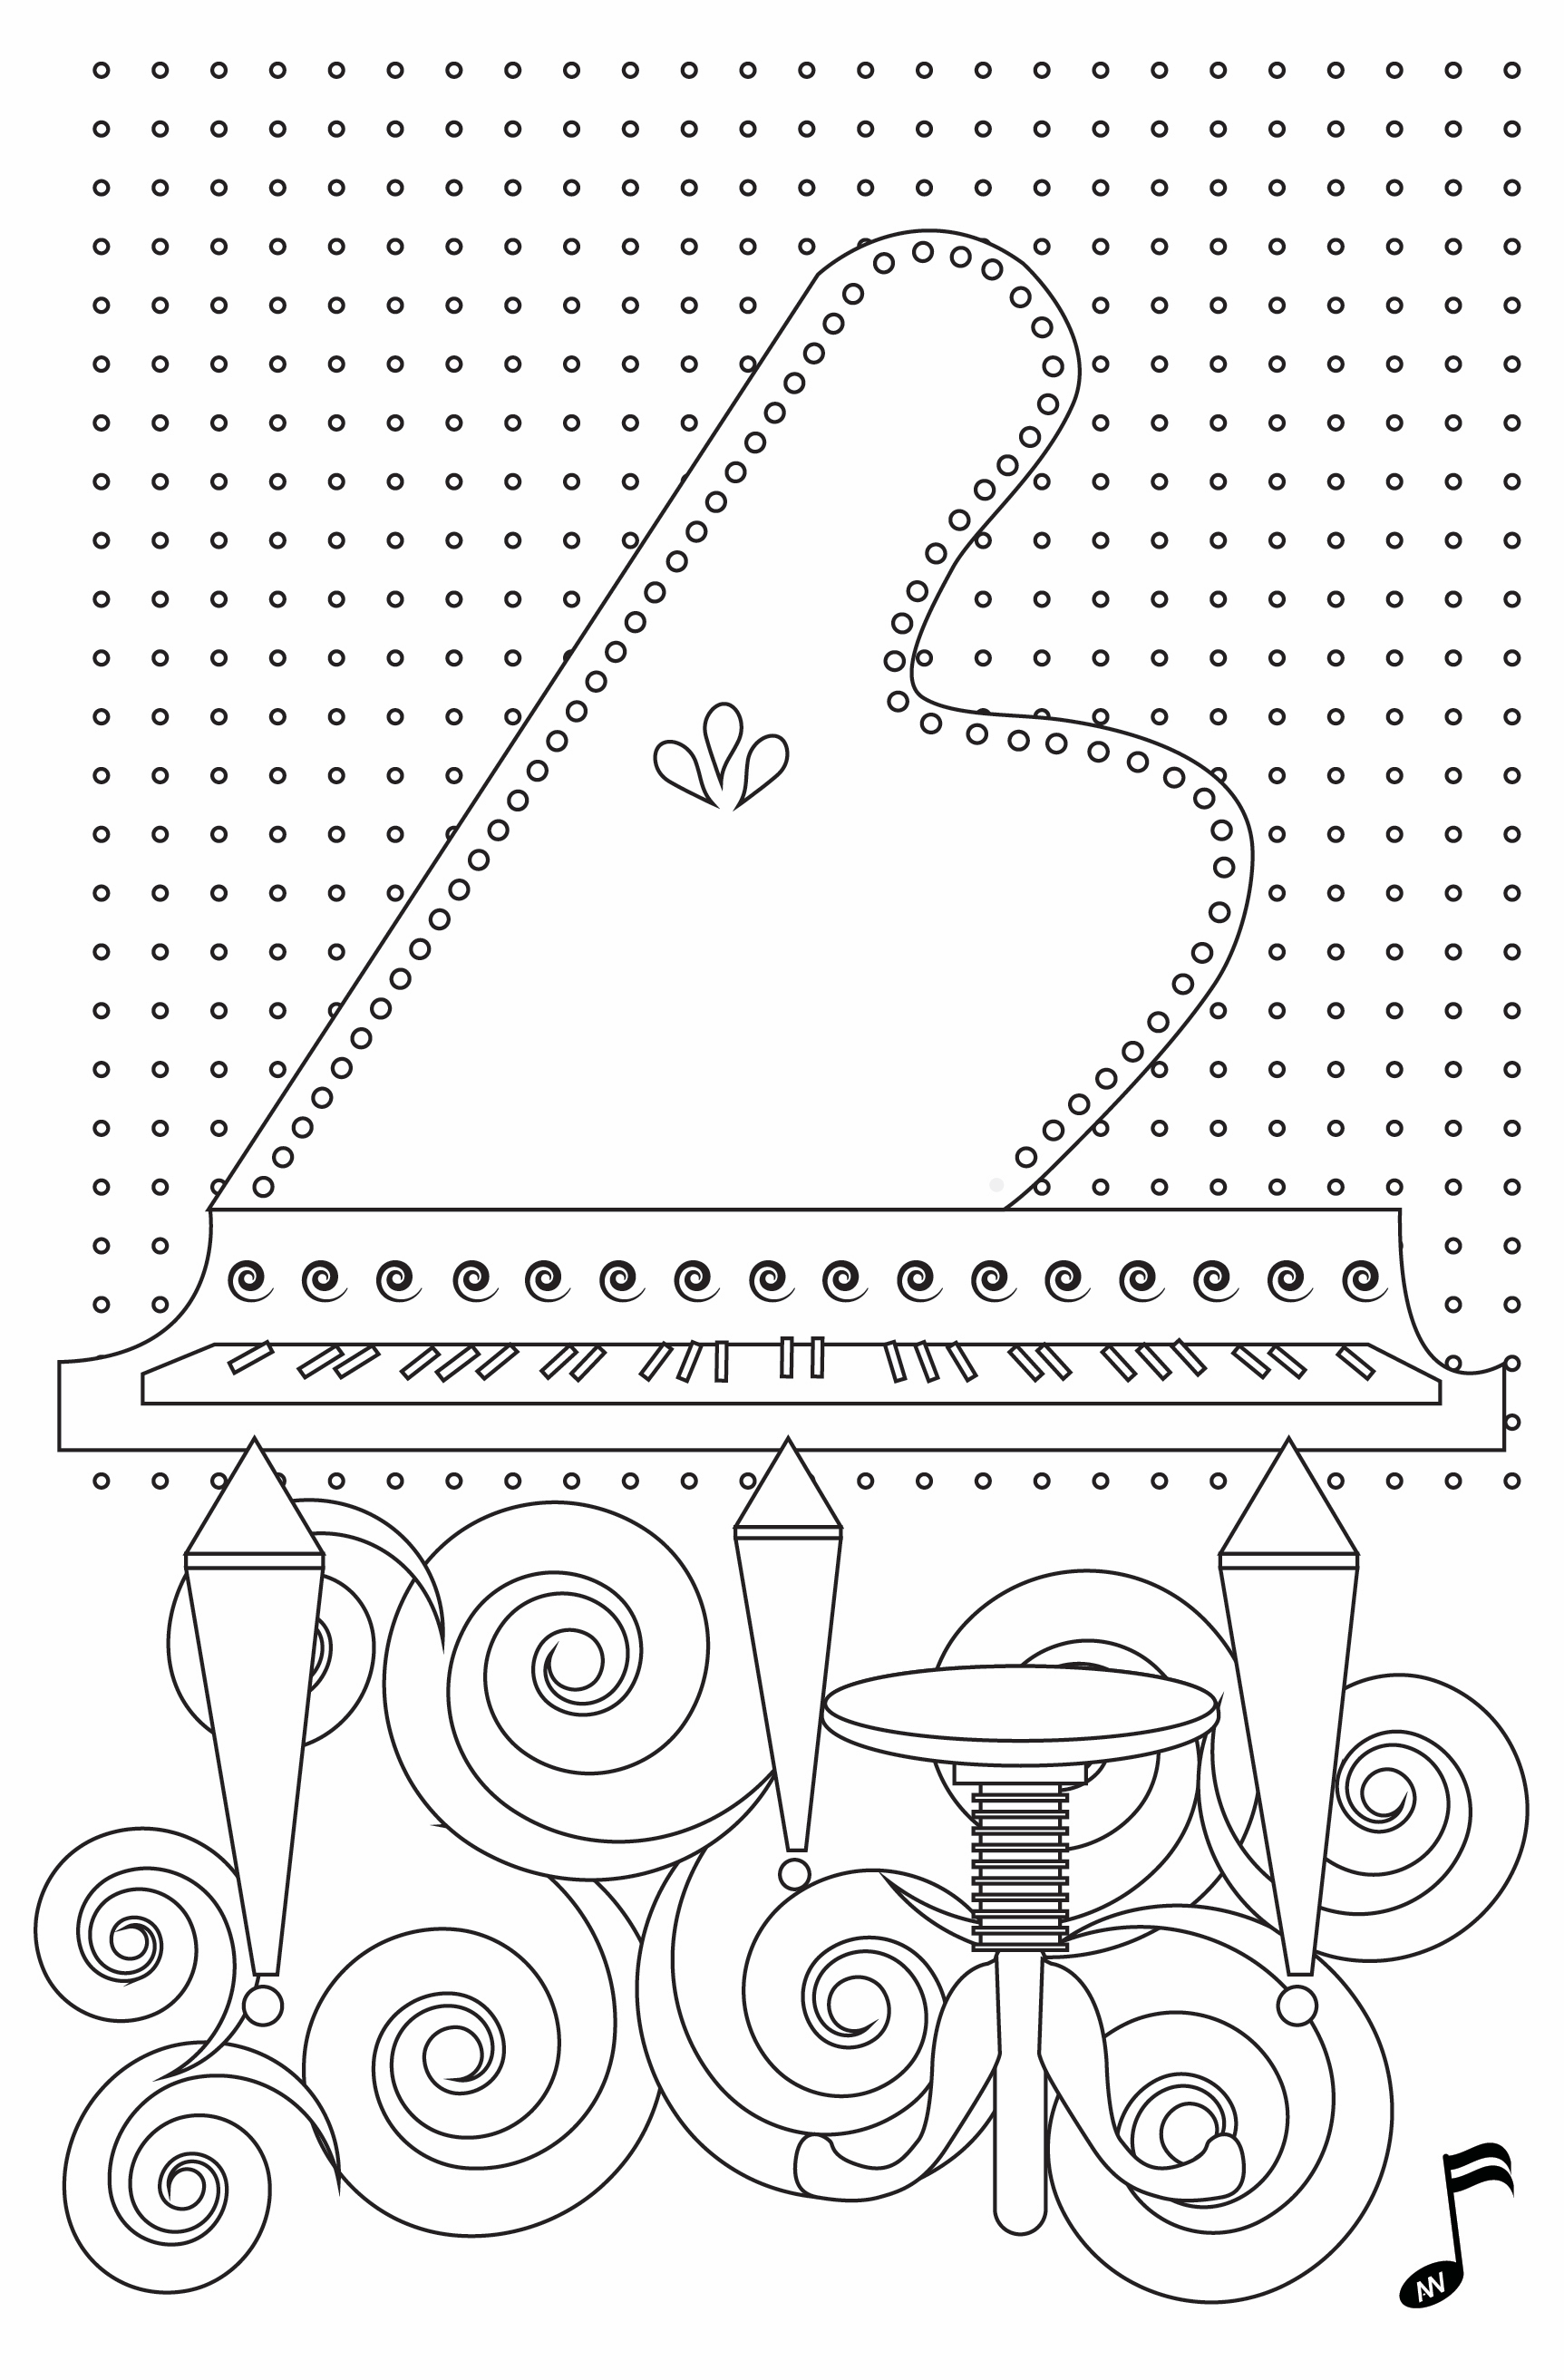 Jazzy-Piano-Coloring-Page-01.png